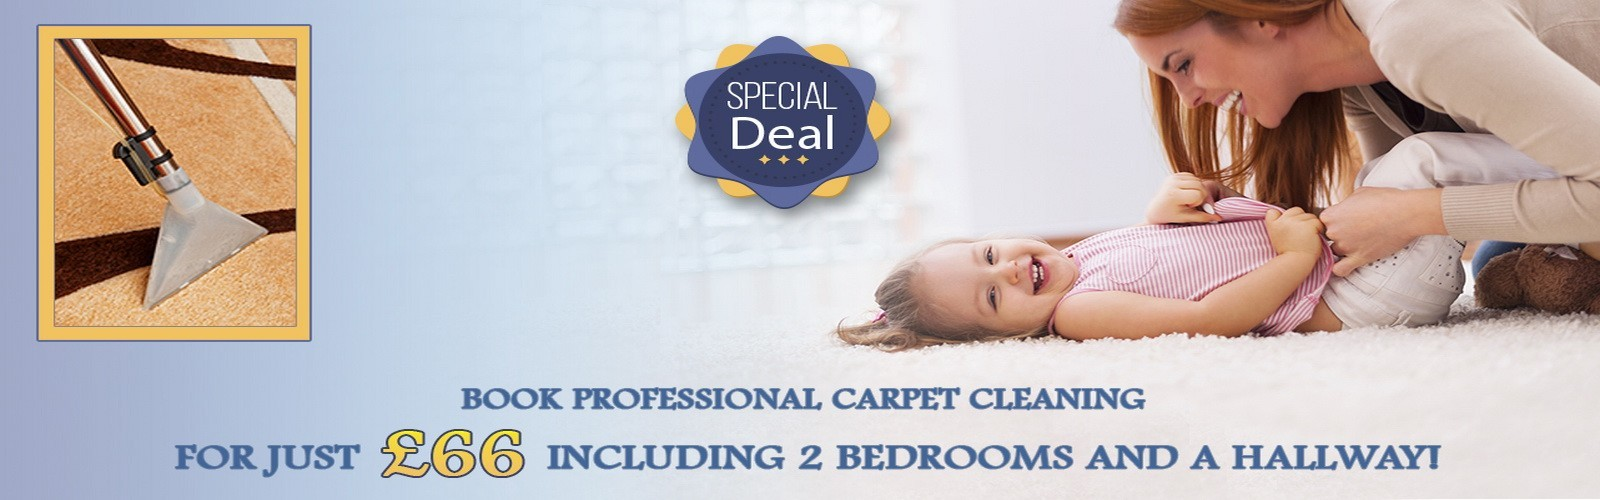 special-deal